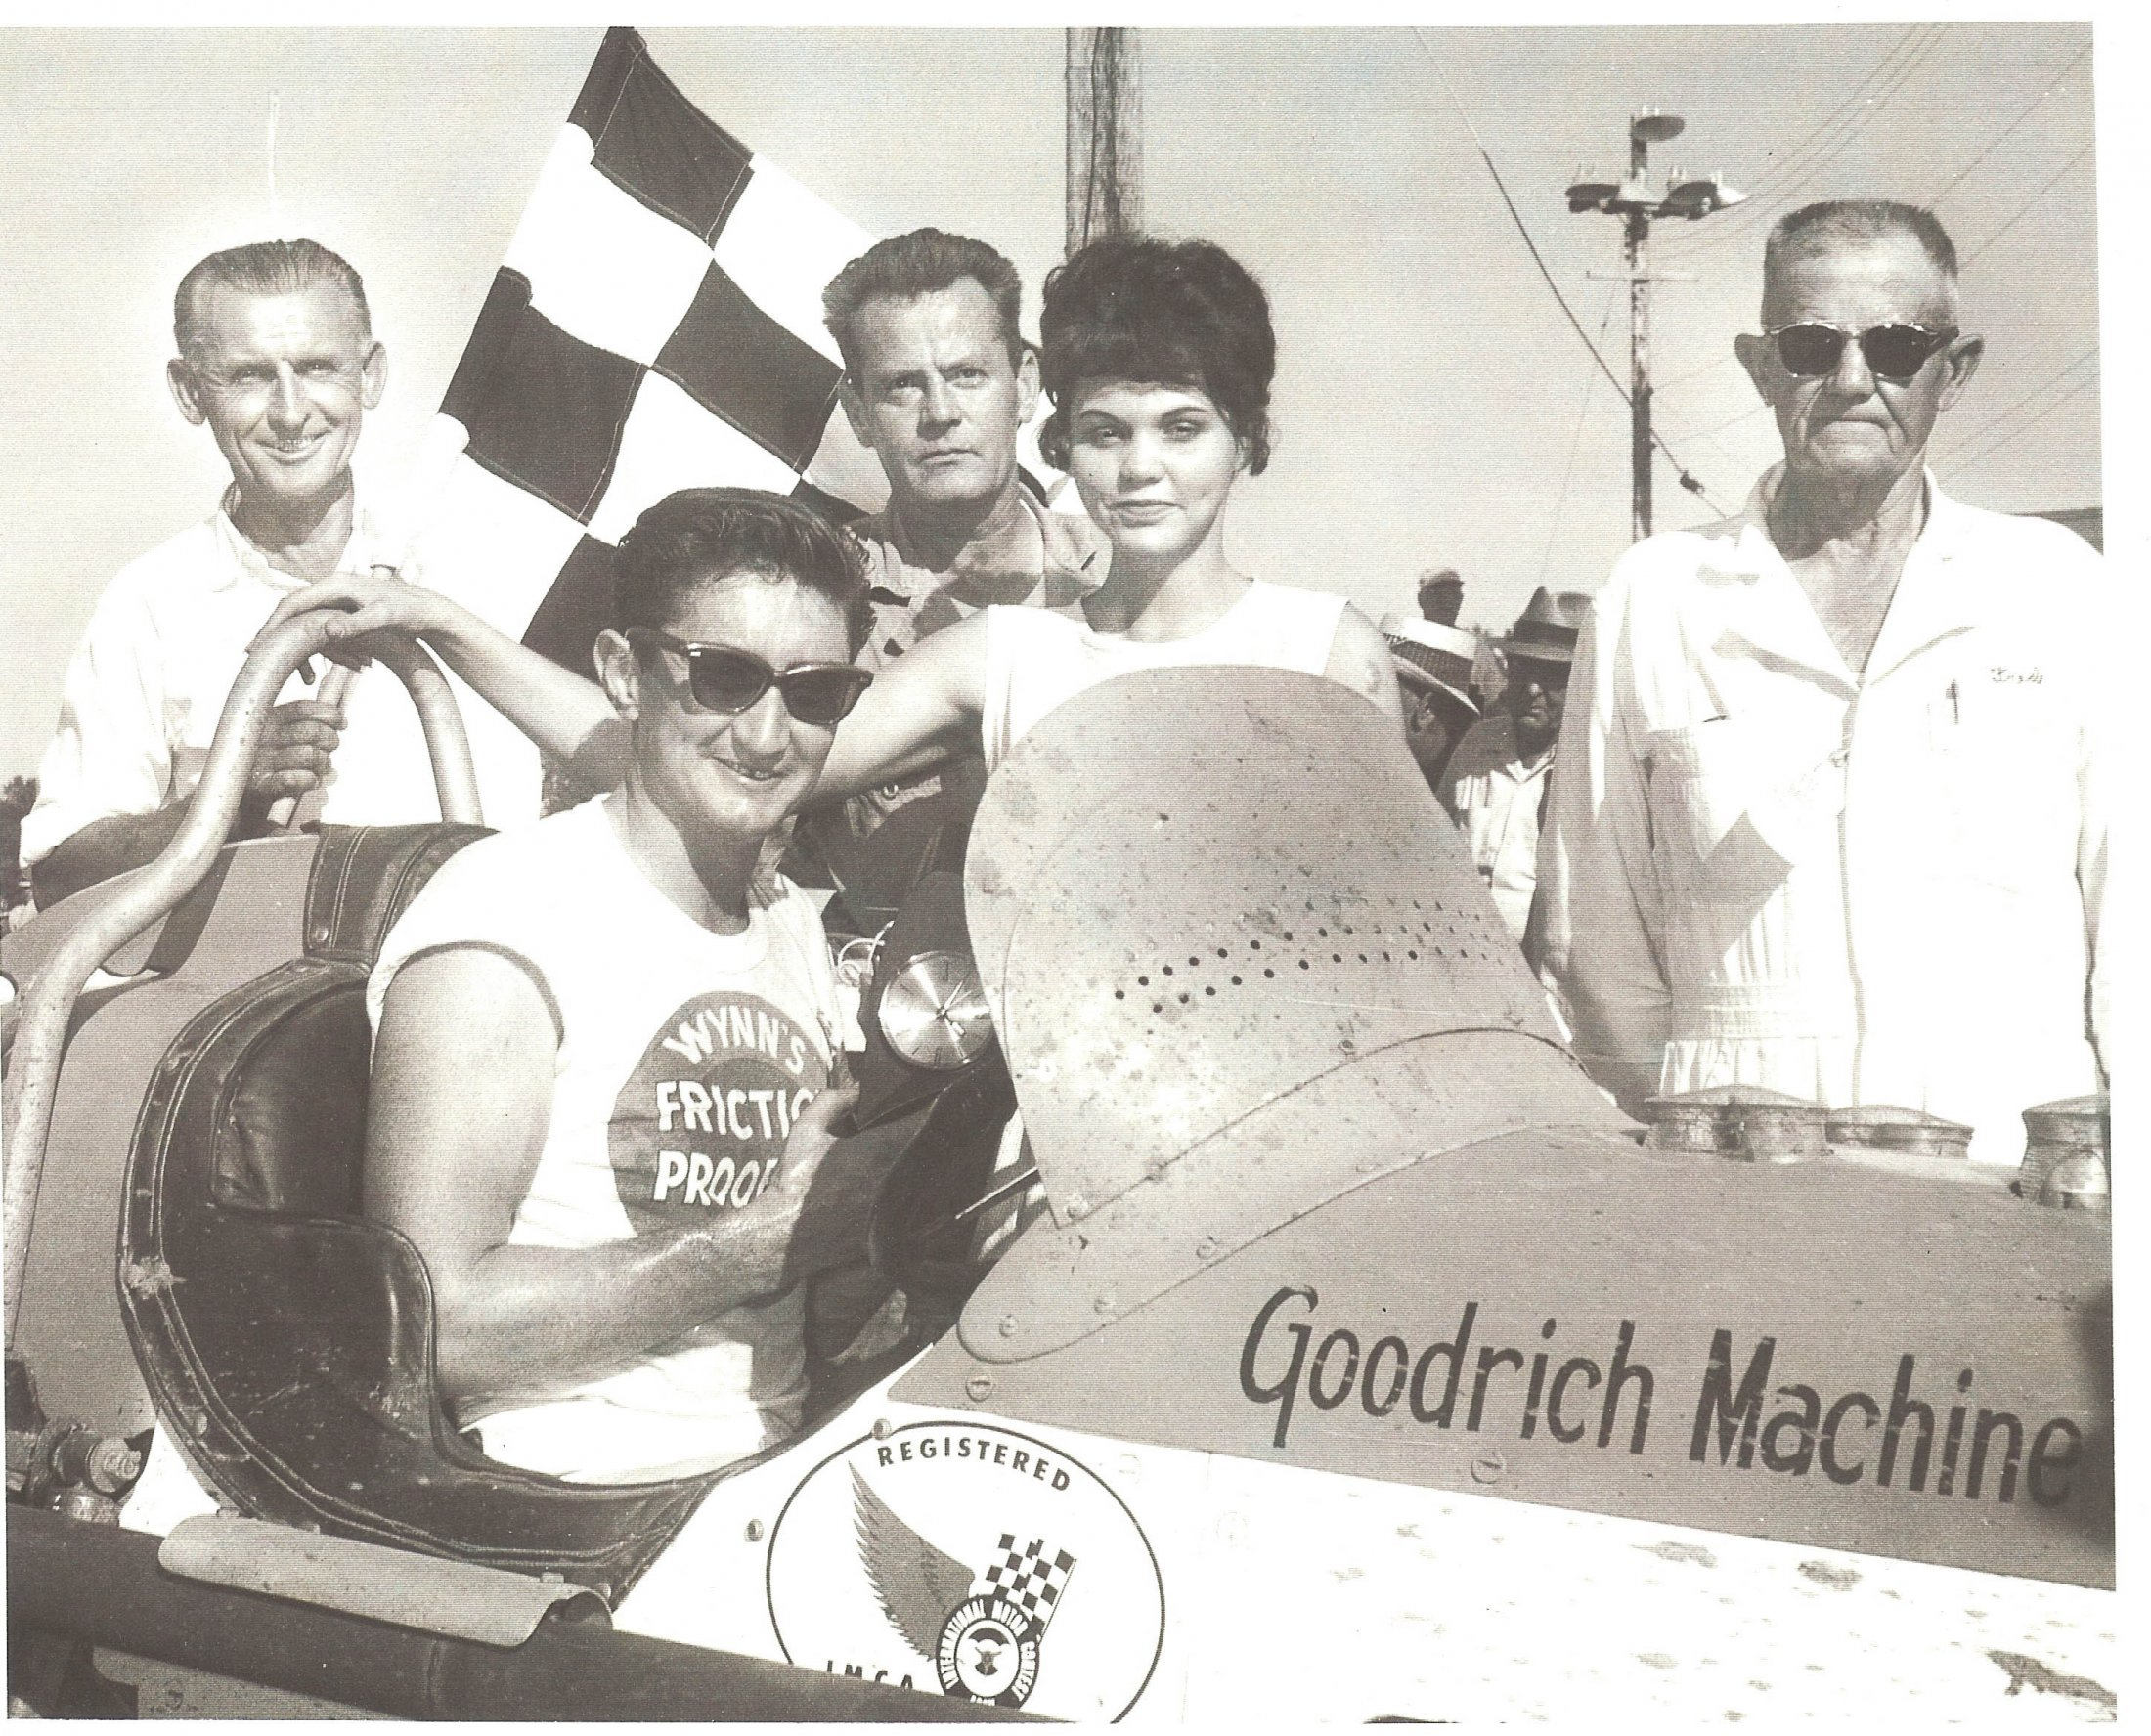 Dale Reed Goodrich Chevy